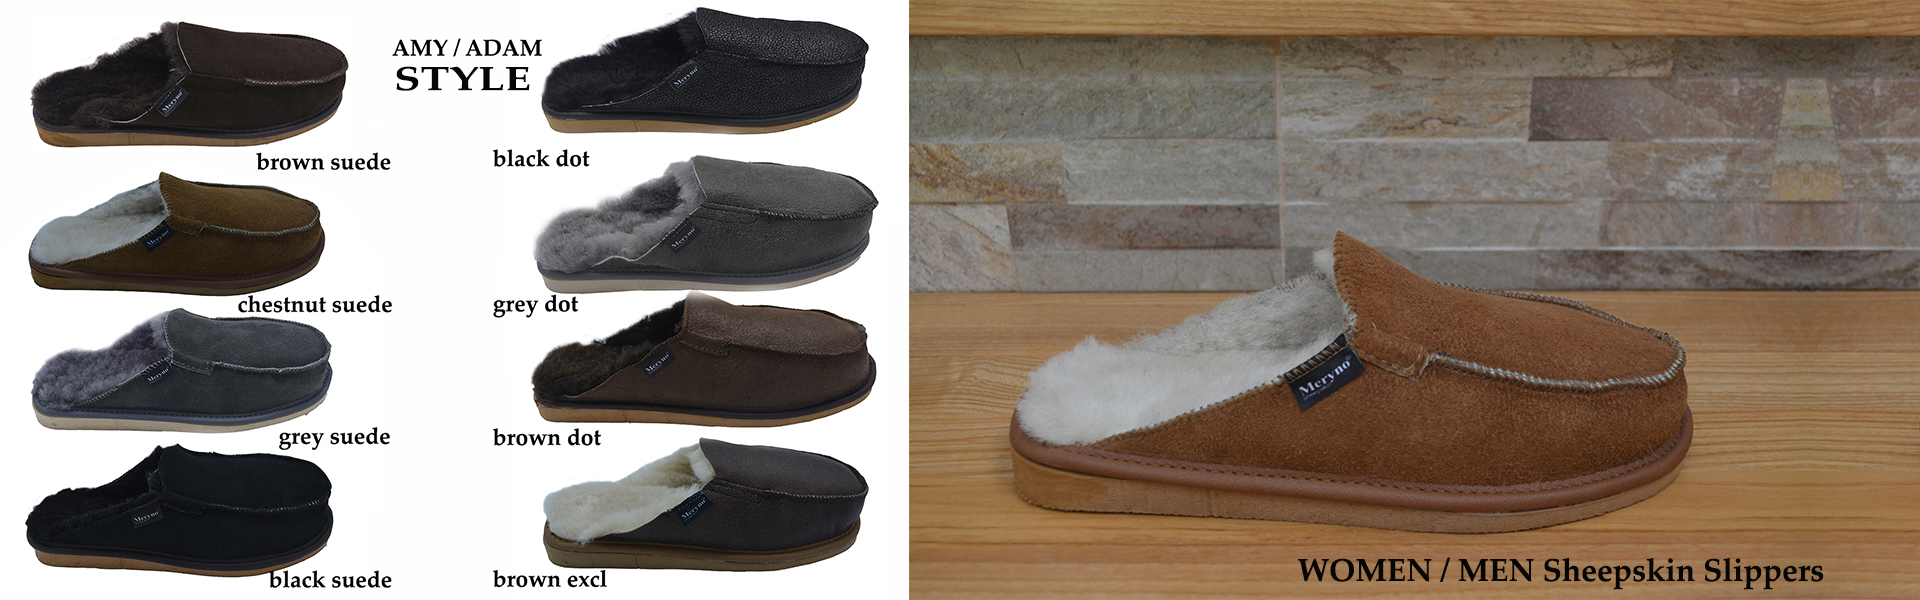 real sheepskin slippers women men black brown grey